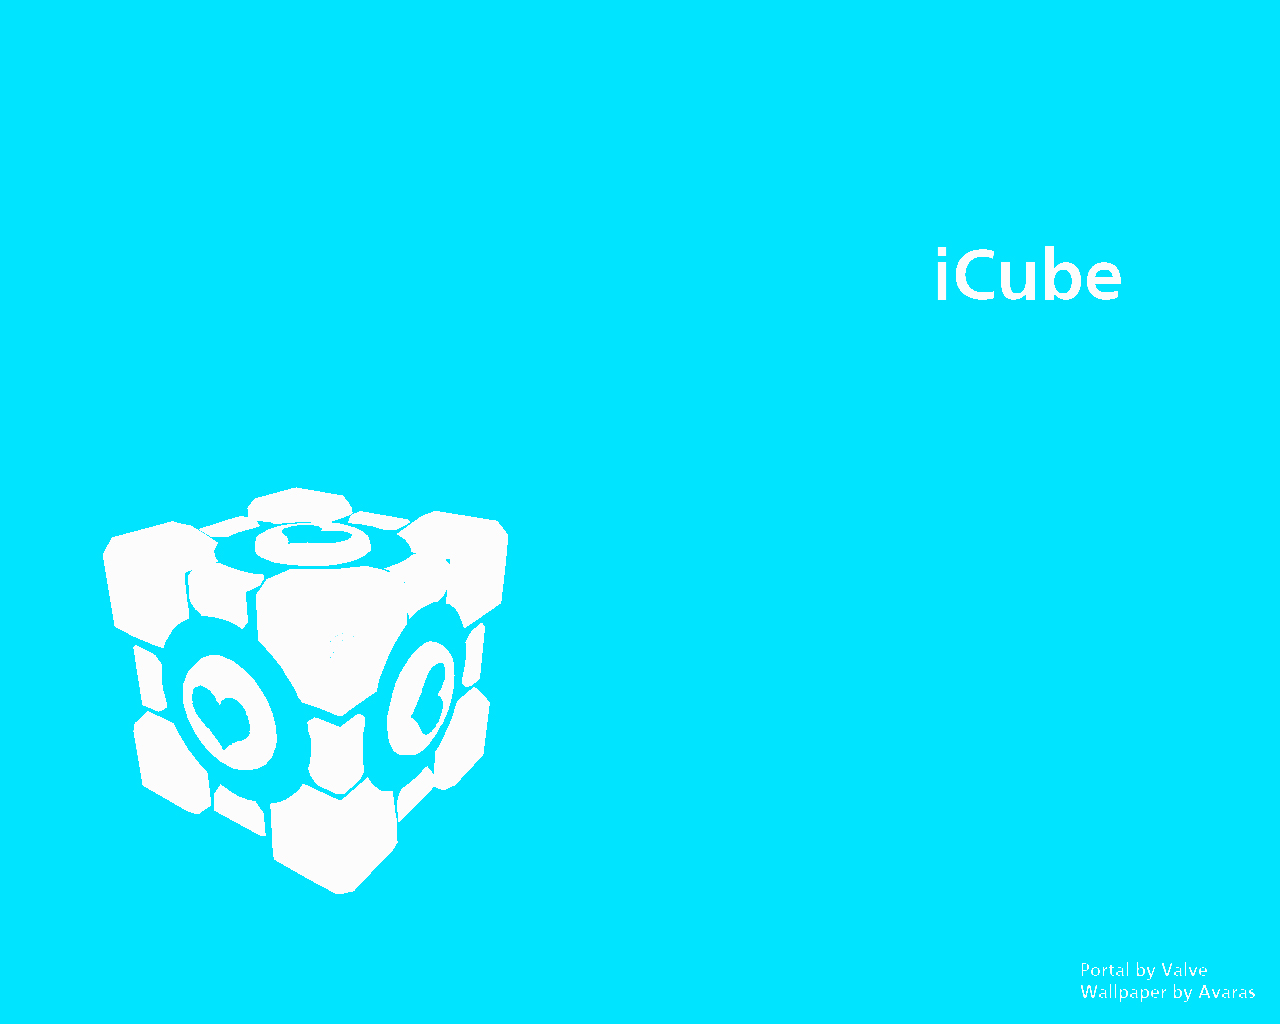 iCube wallpaper by Avaras